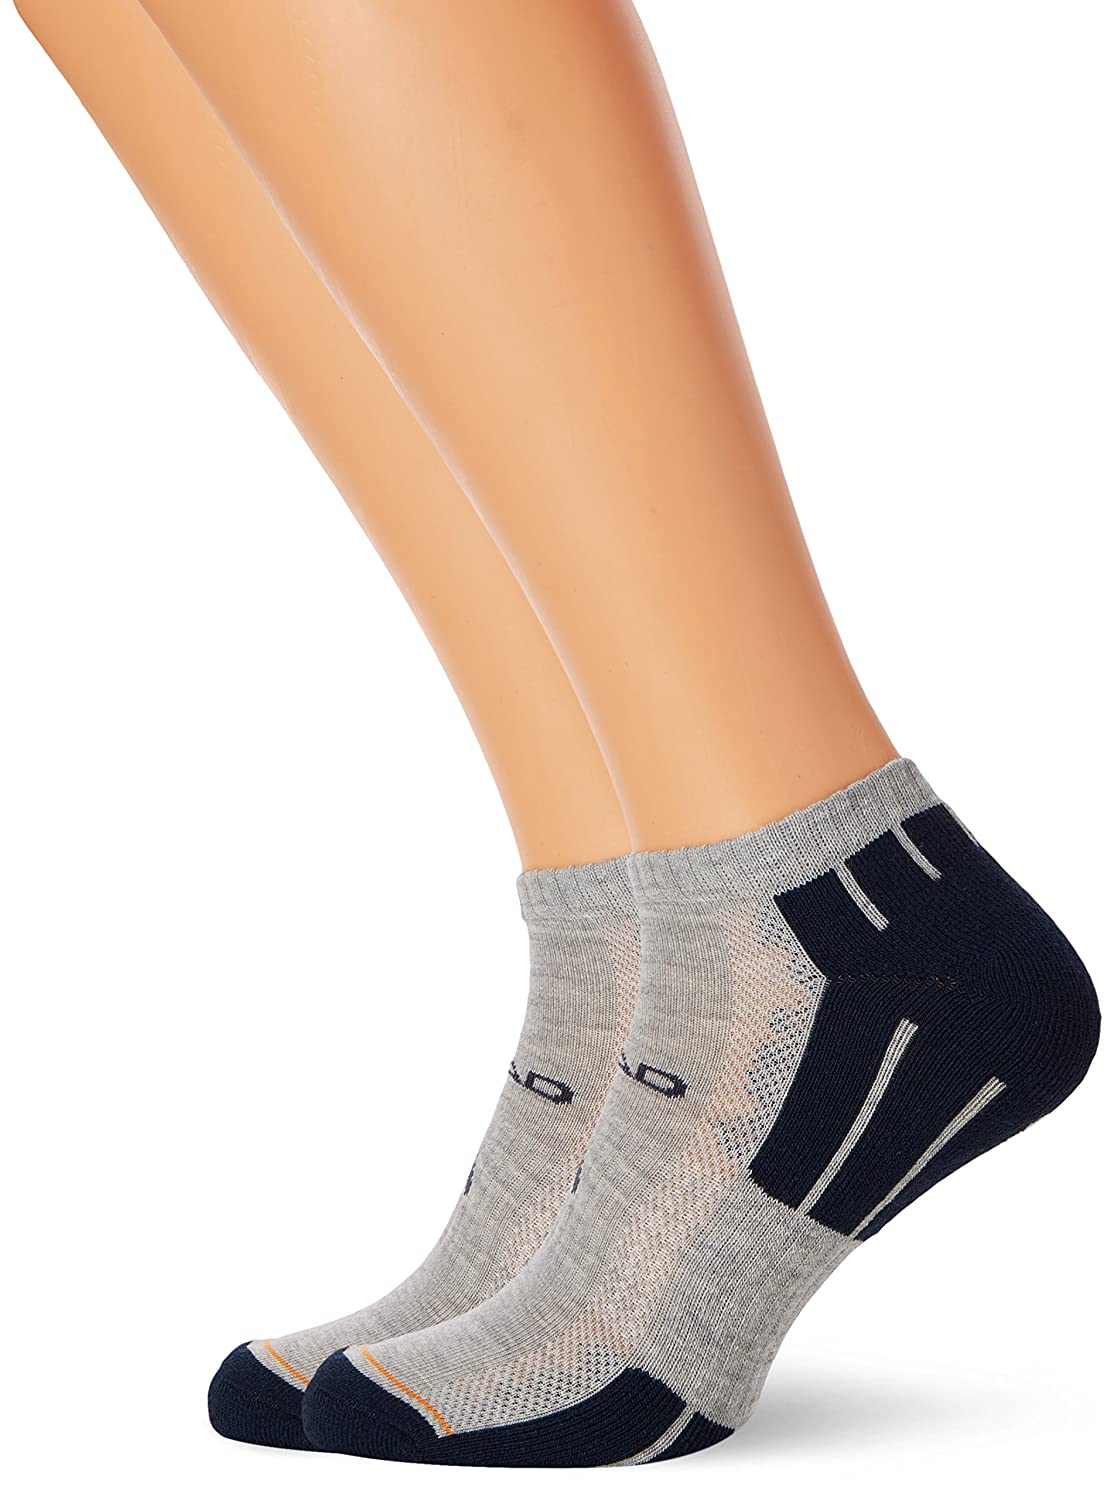 Head Performance Quarter 2P Calcetines, Hombre, Gris, 39/42: Amazon.es: Deportes y aire libre